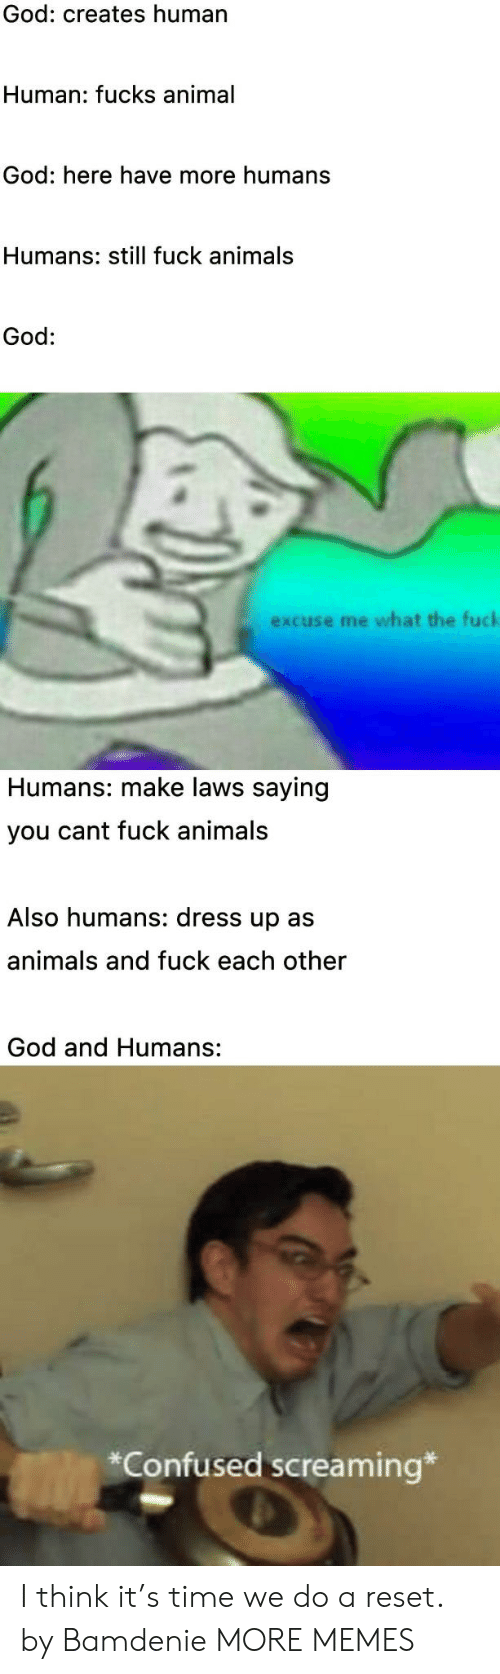 Animals, Confused, and Dank: God: creates human  Human: fucks animal  God: here have more humans  Humans: still fuck animals  God:  excuse me what the fuck  Humans: make laws saying  you cant fuck animals  Also humans: dress up as  animals and fuck each other  God and Humans:  *Confused screaming* I think it's time we do a reset. by Bamdenie MORE MEMES